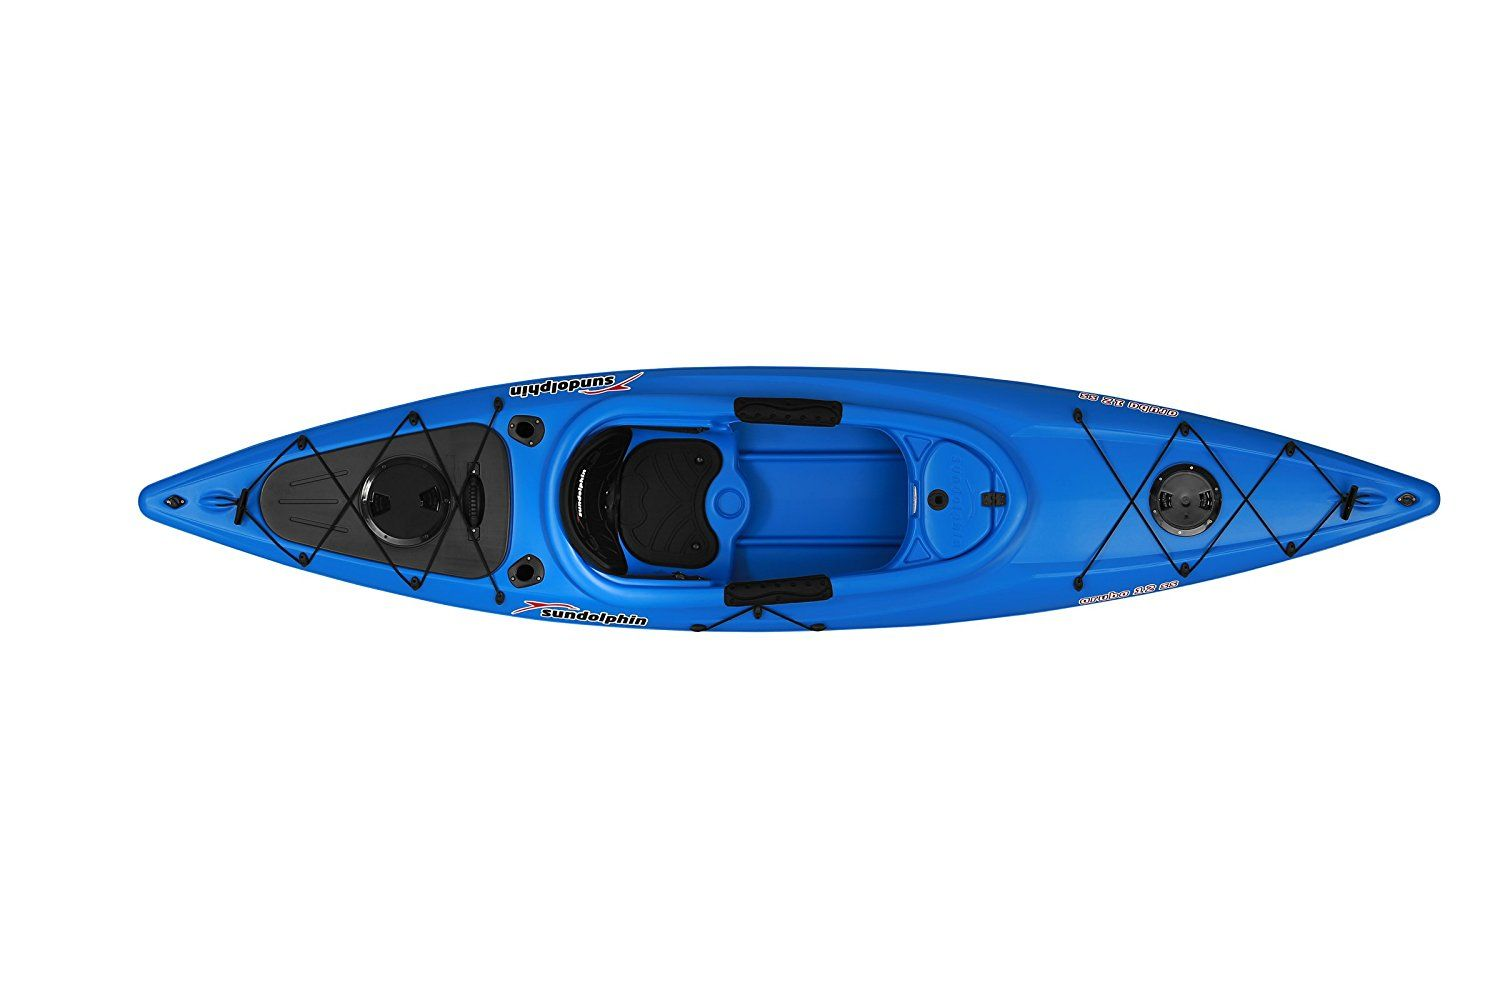 Best Fishing Kayak Reviews 2017 With Ultimate Buying Guide Http Trickyfisher Com Best Fishing Kayak Reviews Best Fishing Kayak Kayak Fishing Best Fishing